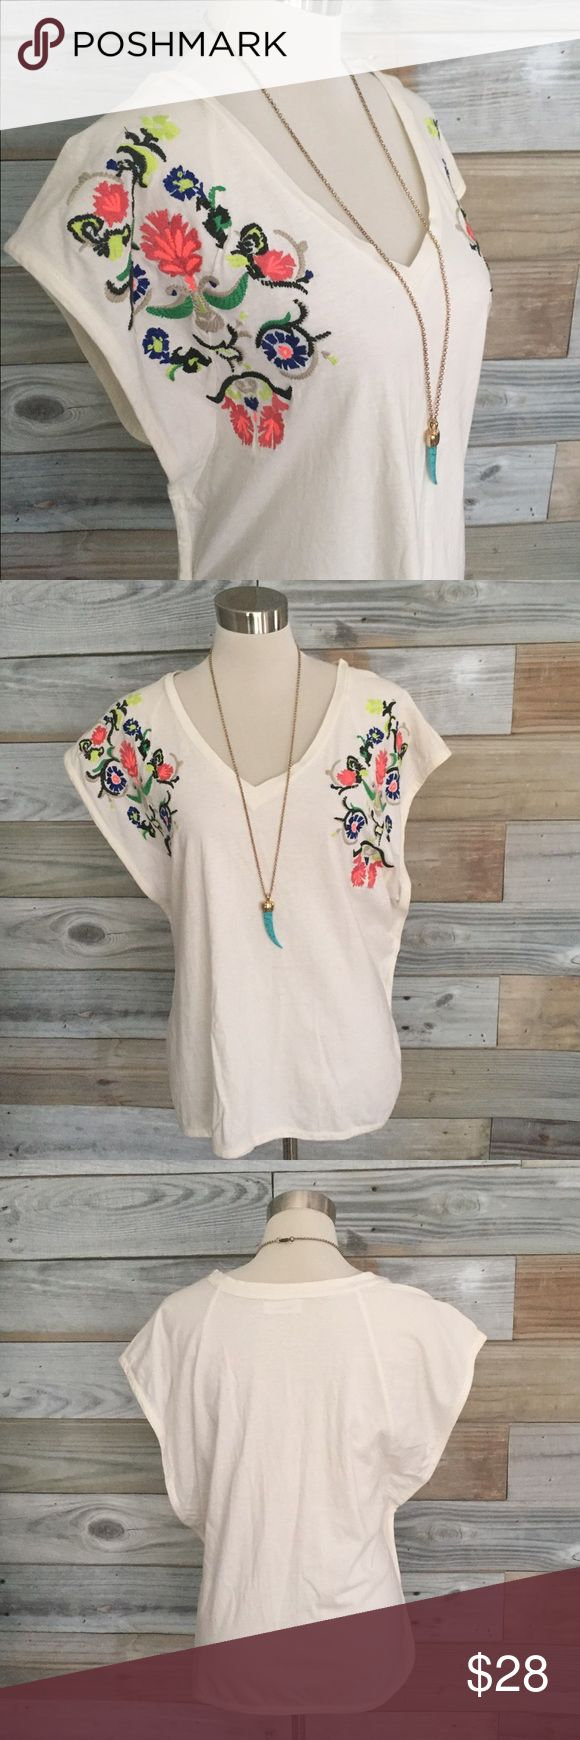 """{Tart} Embroidered Oversize Dolman Favulous oversized dolman top with AMAZING colorful floral & vine embroidery completely covering both sleeves & partially across chest placket. Oversize """"boyfriend"""" style cut with wide set & low hanging dolman armholes, made to be worn a little slouchy--so bohemian & pretty; embroidery enough; you don't need tons of jewelry...just your favorite jeans! **Please note--TINY (as in, borderline microscopic) hole in upper left chest area. See photo 4-easy fix…"""